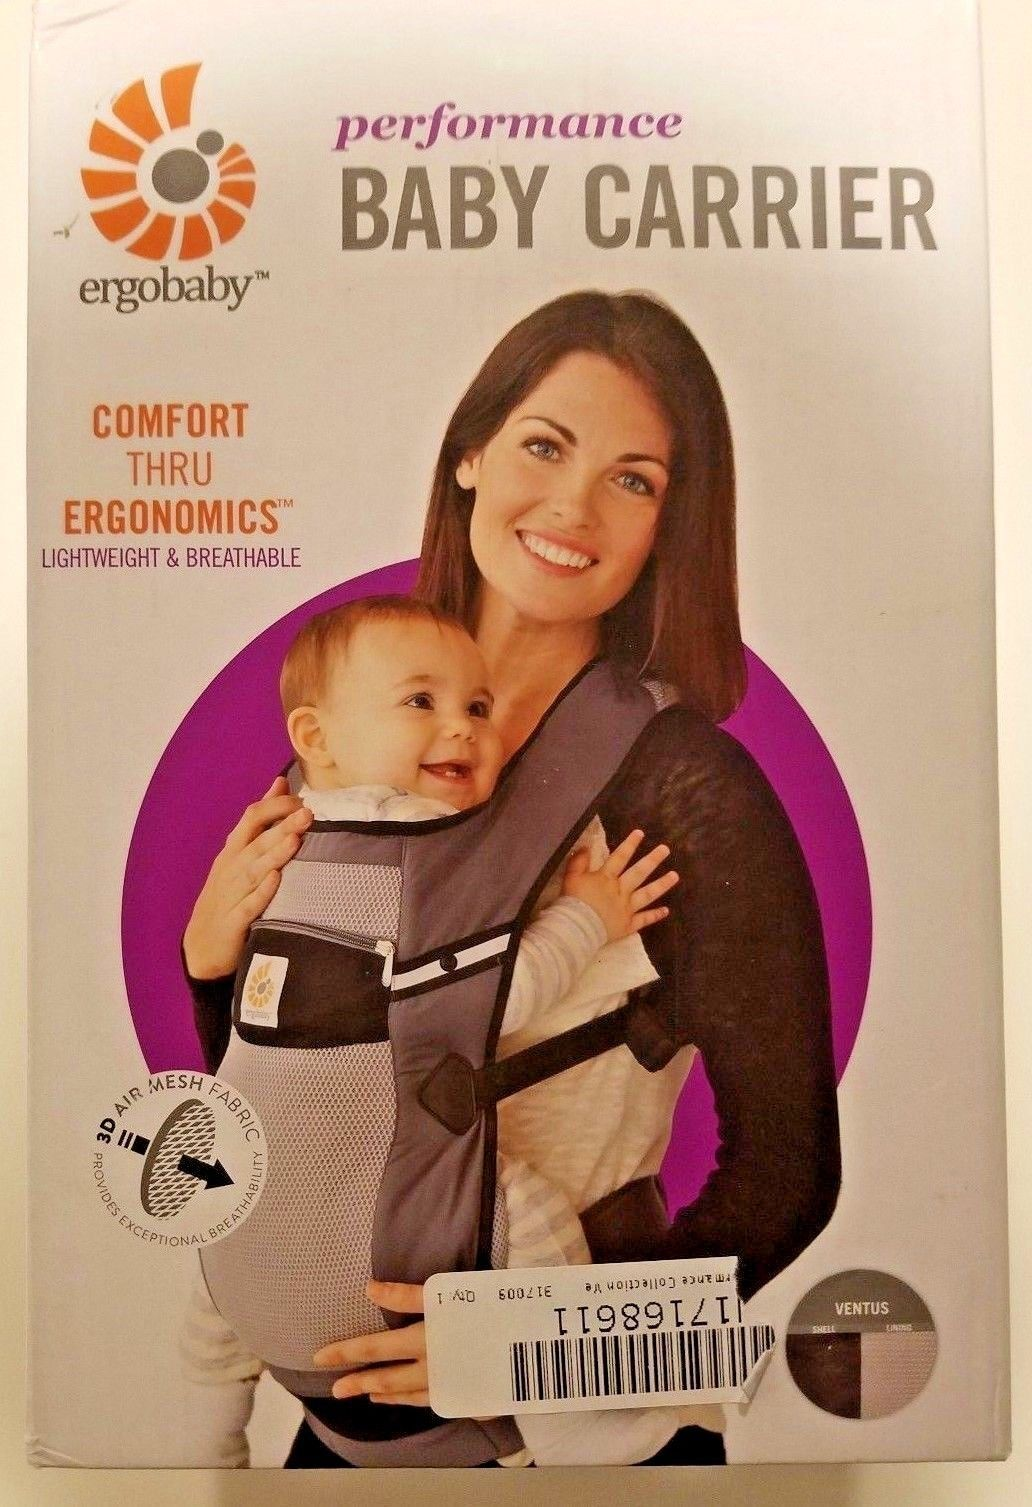 30c739d8e7f Ergobaby Performance 3 Position Baby Carrier - Ventus Graphite for ...